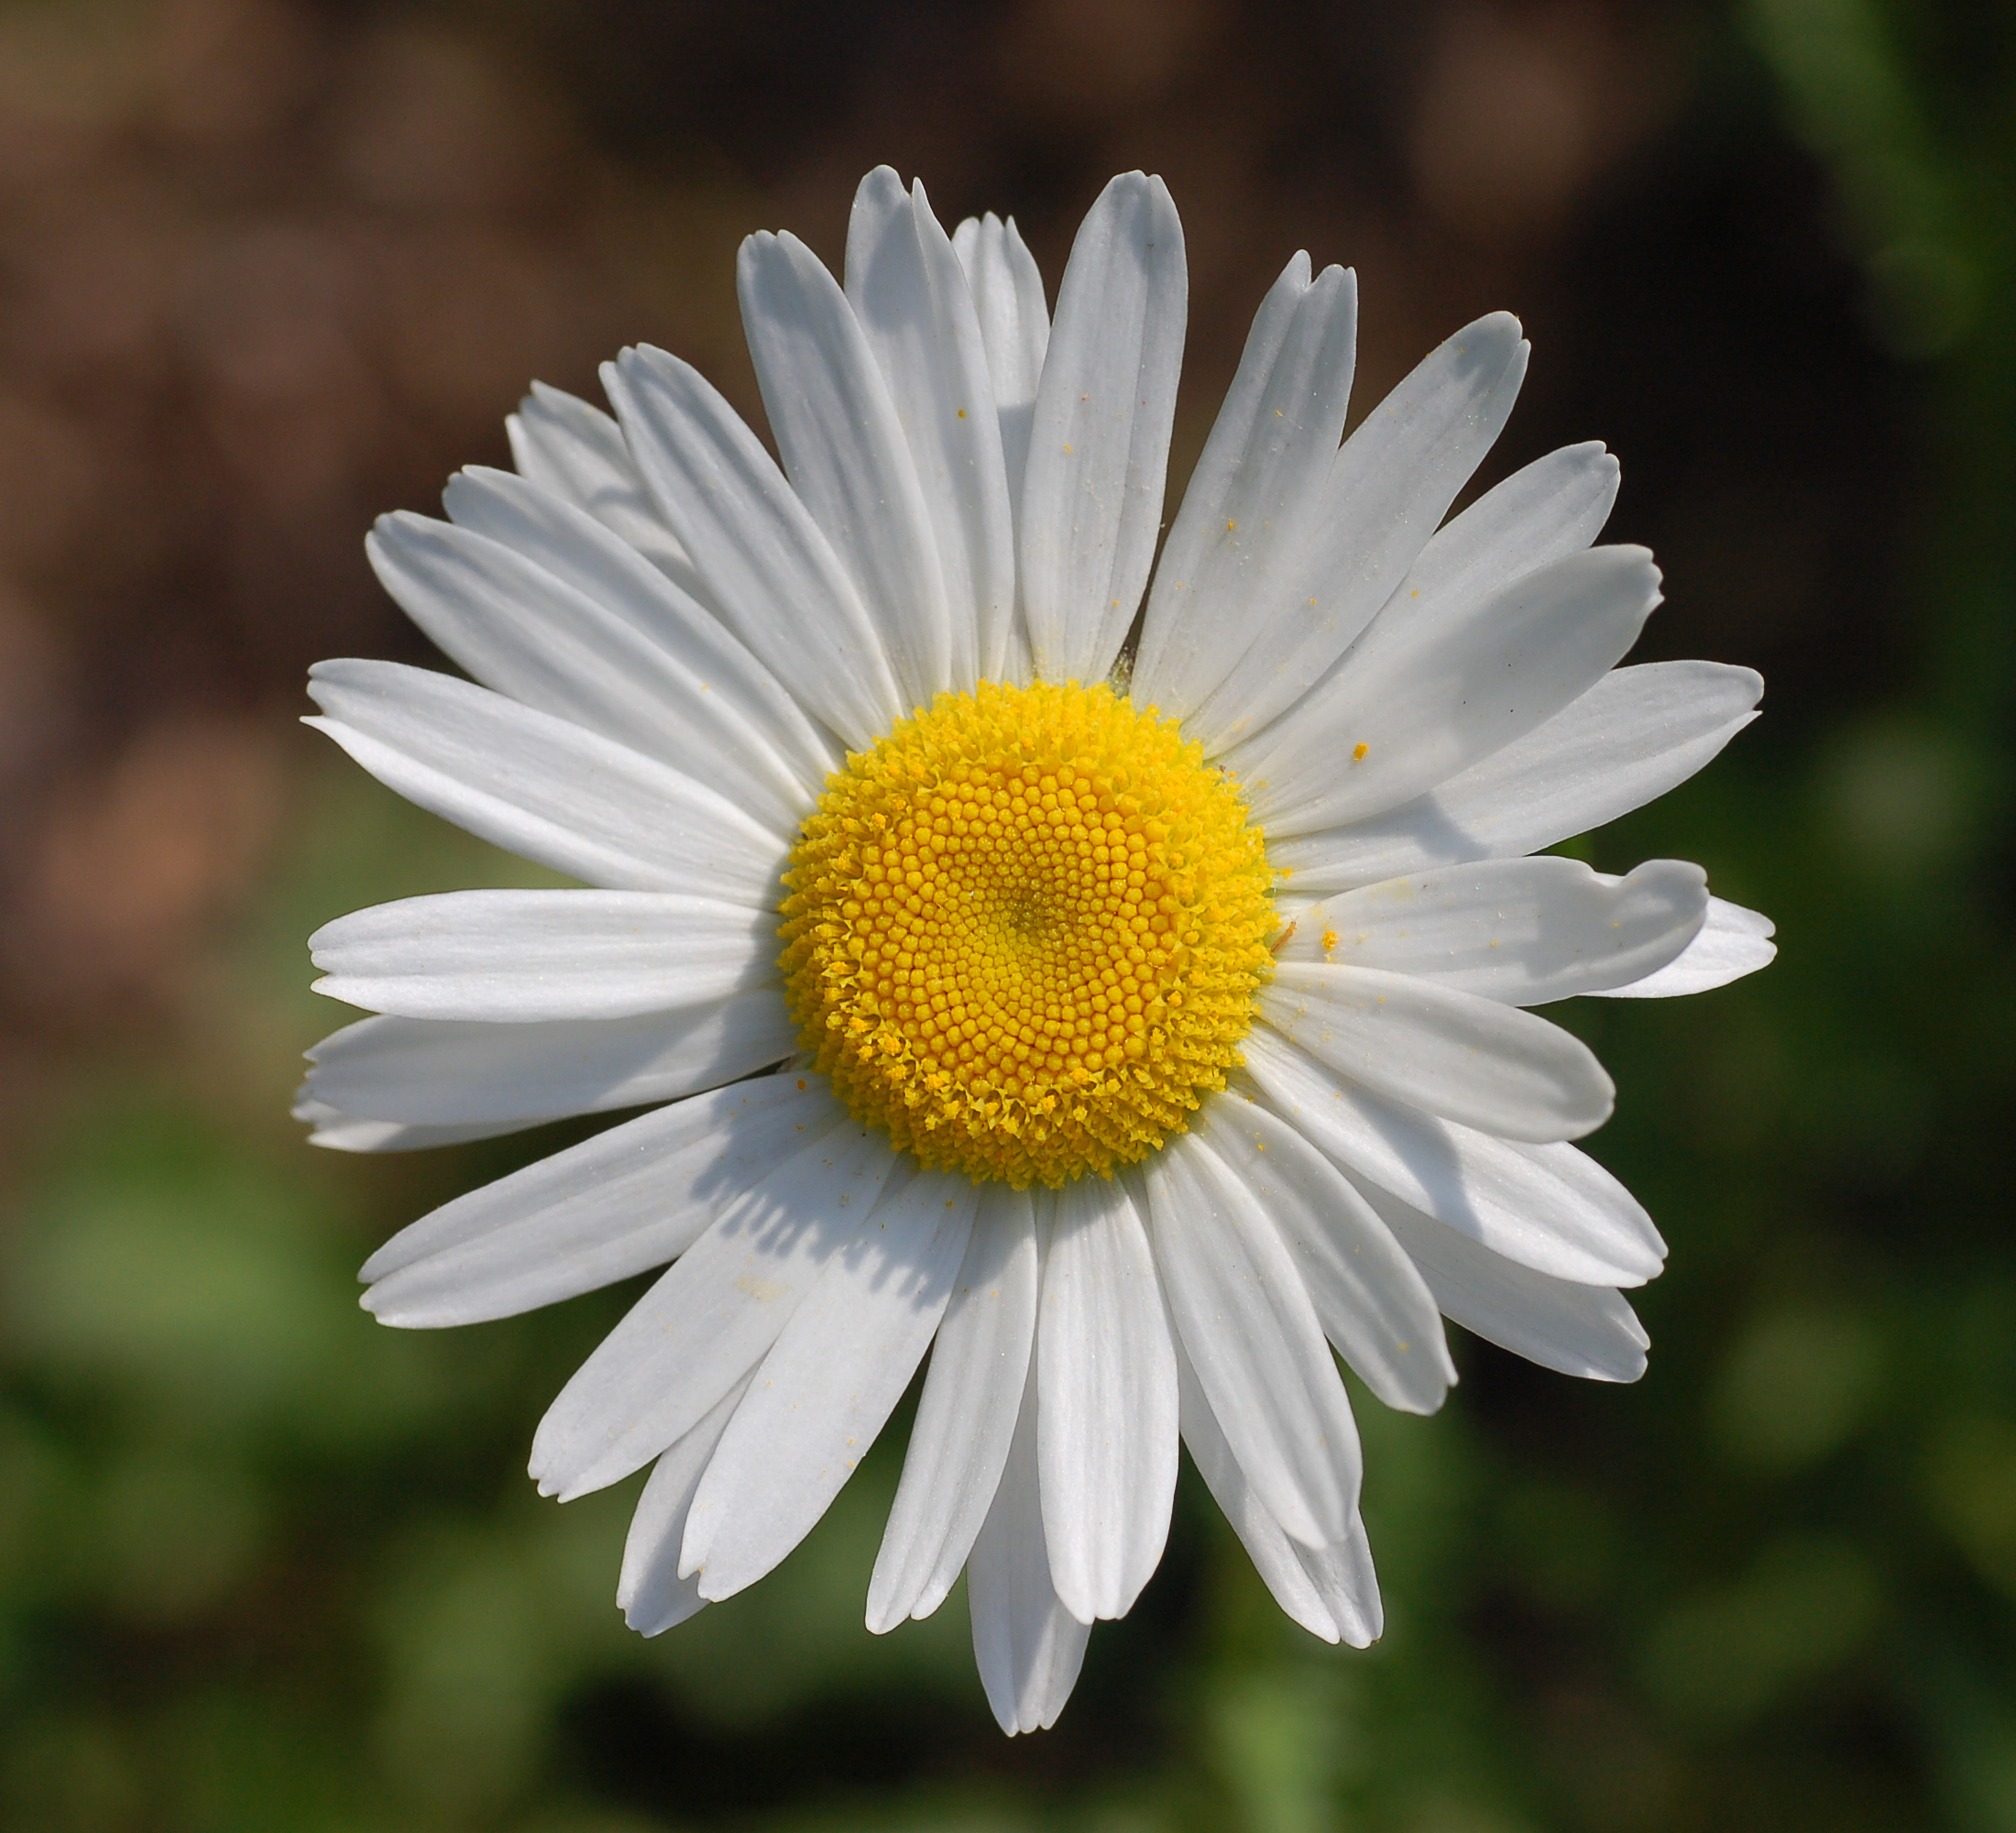 Daisy photo